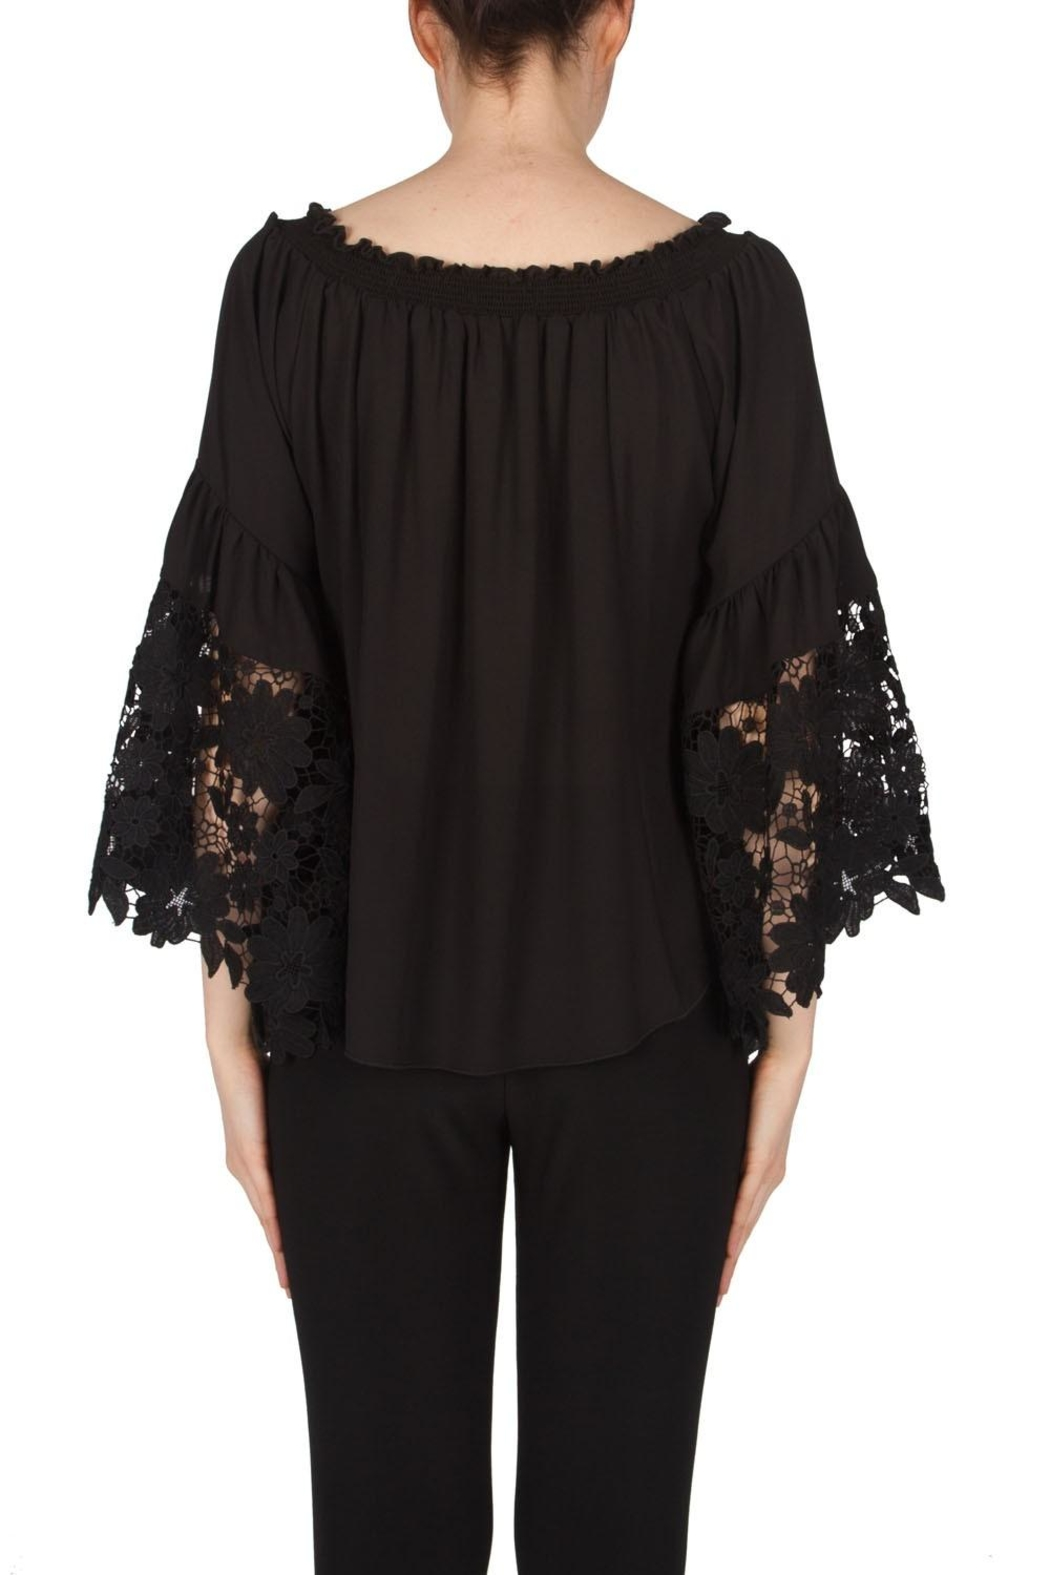 Joseph Ribkoff Bell Sleeves Top - Side Cropped Image